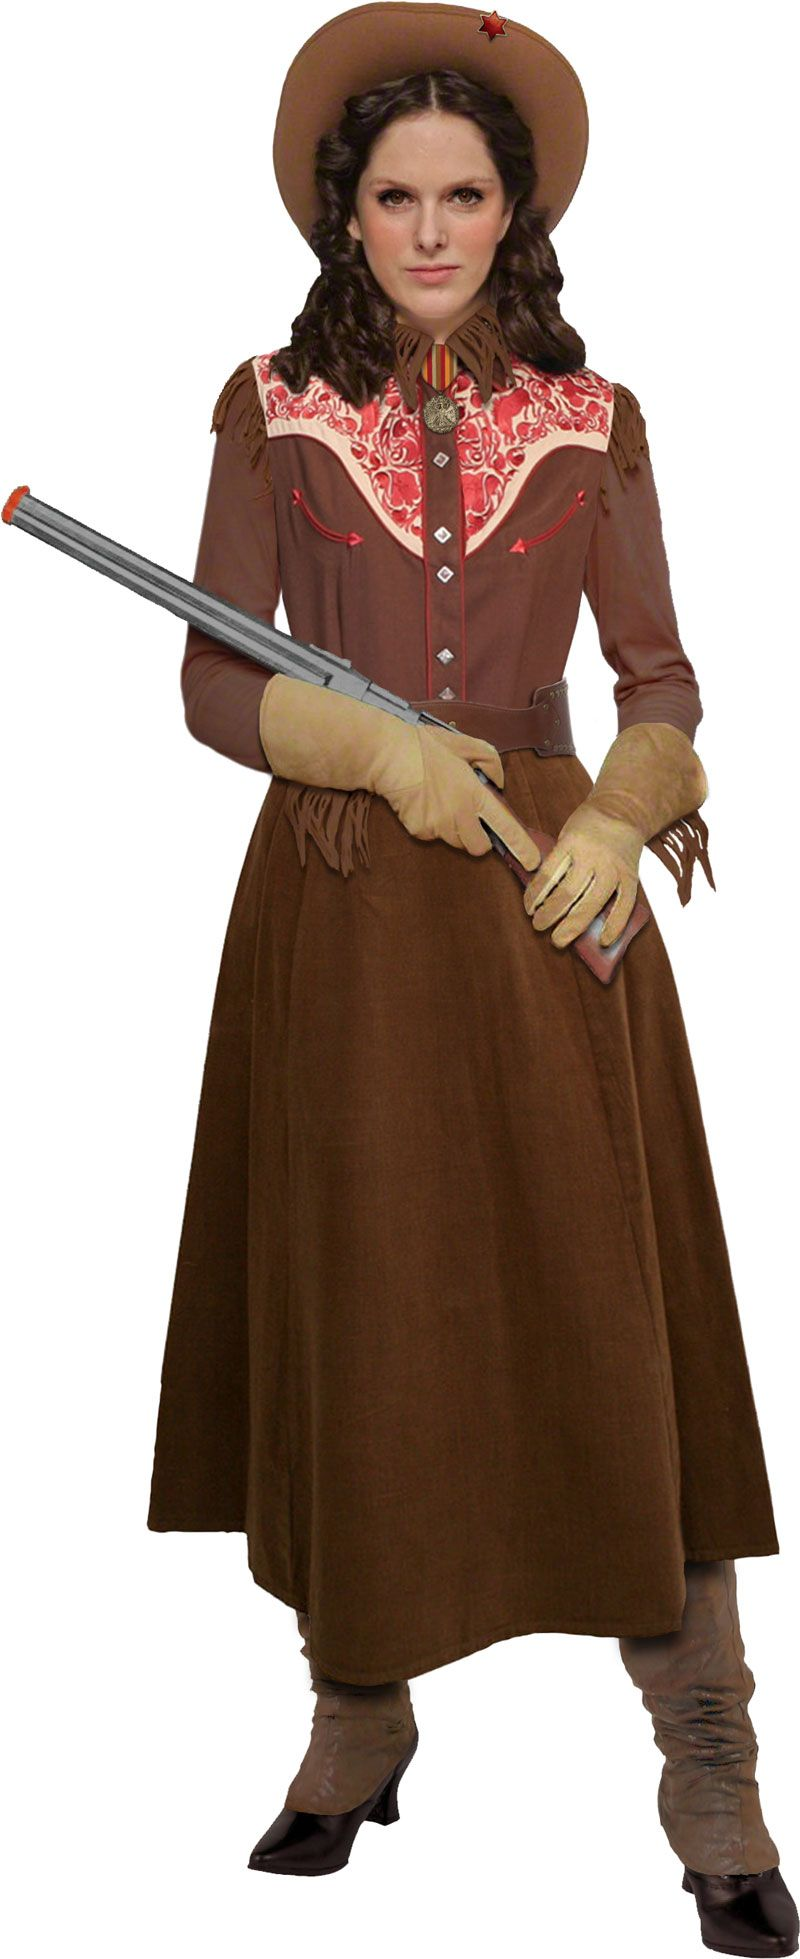 Gallery images and information annie keenan reduction - Annie Oakley Costume Annie Oakley Take Back Halloween